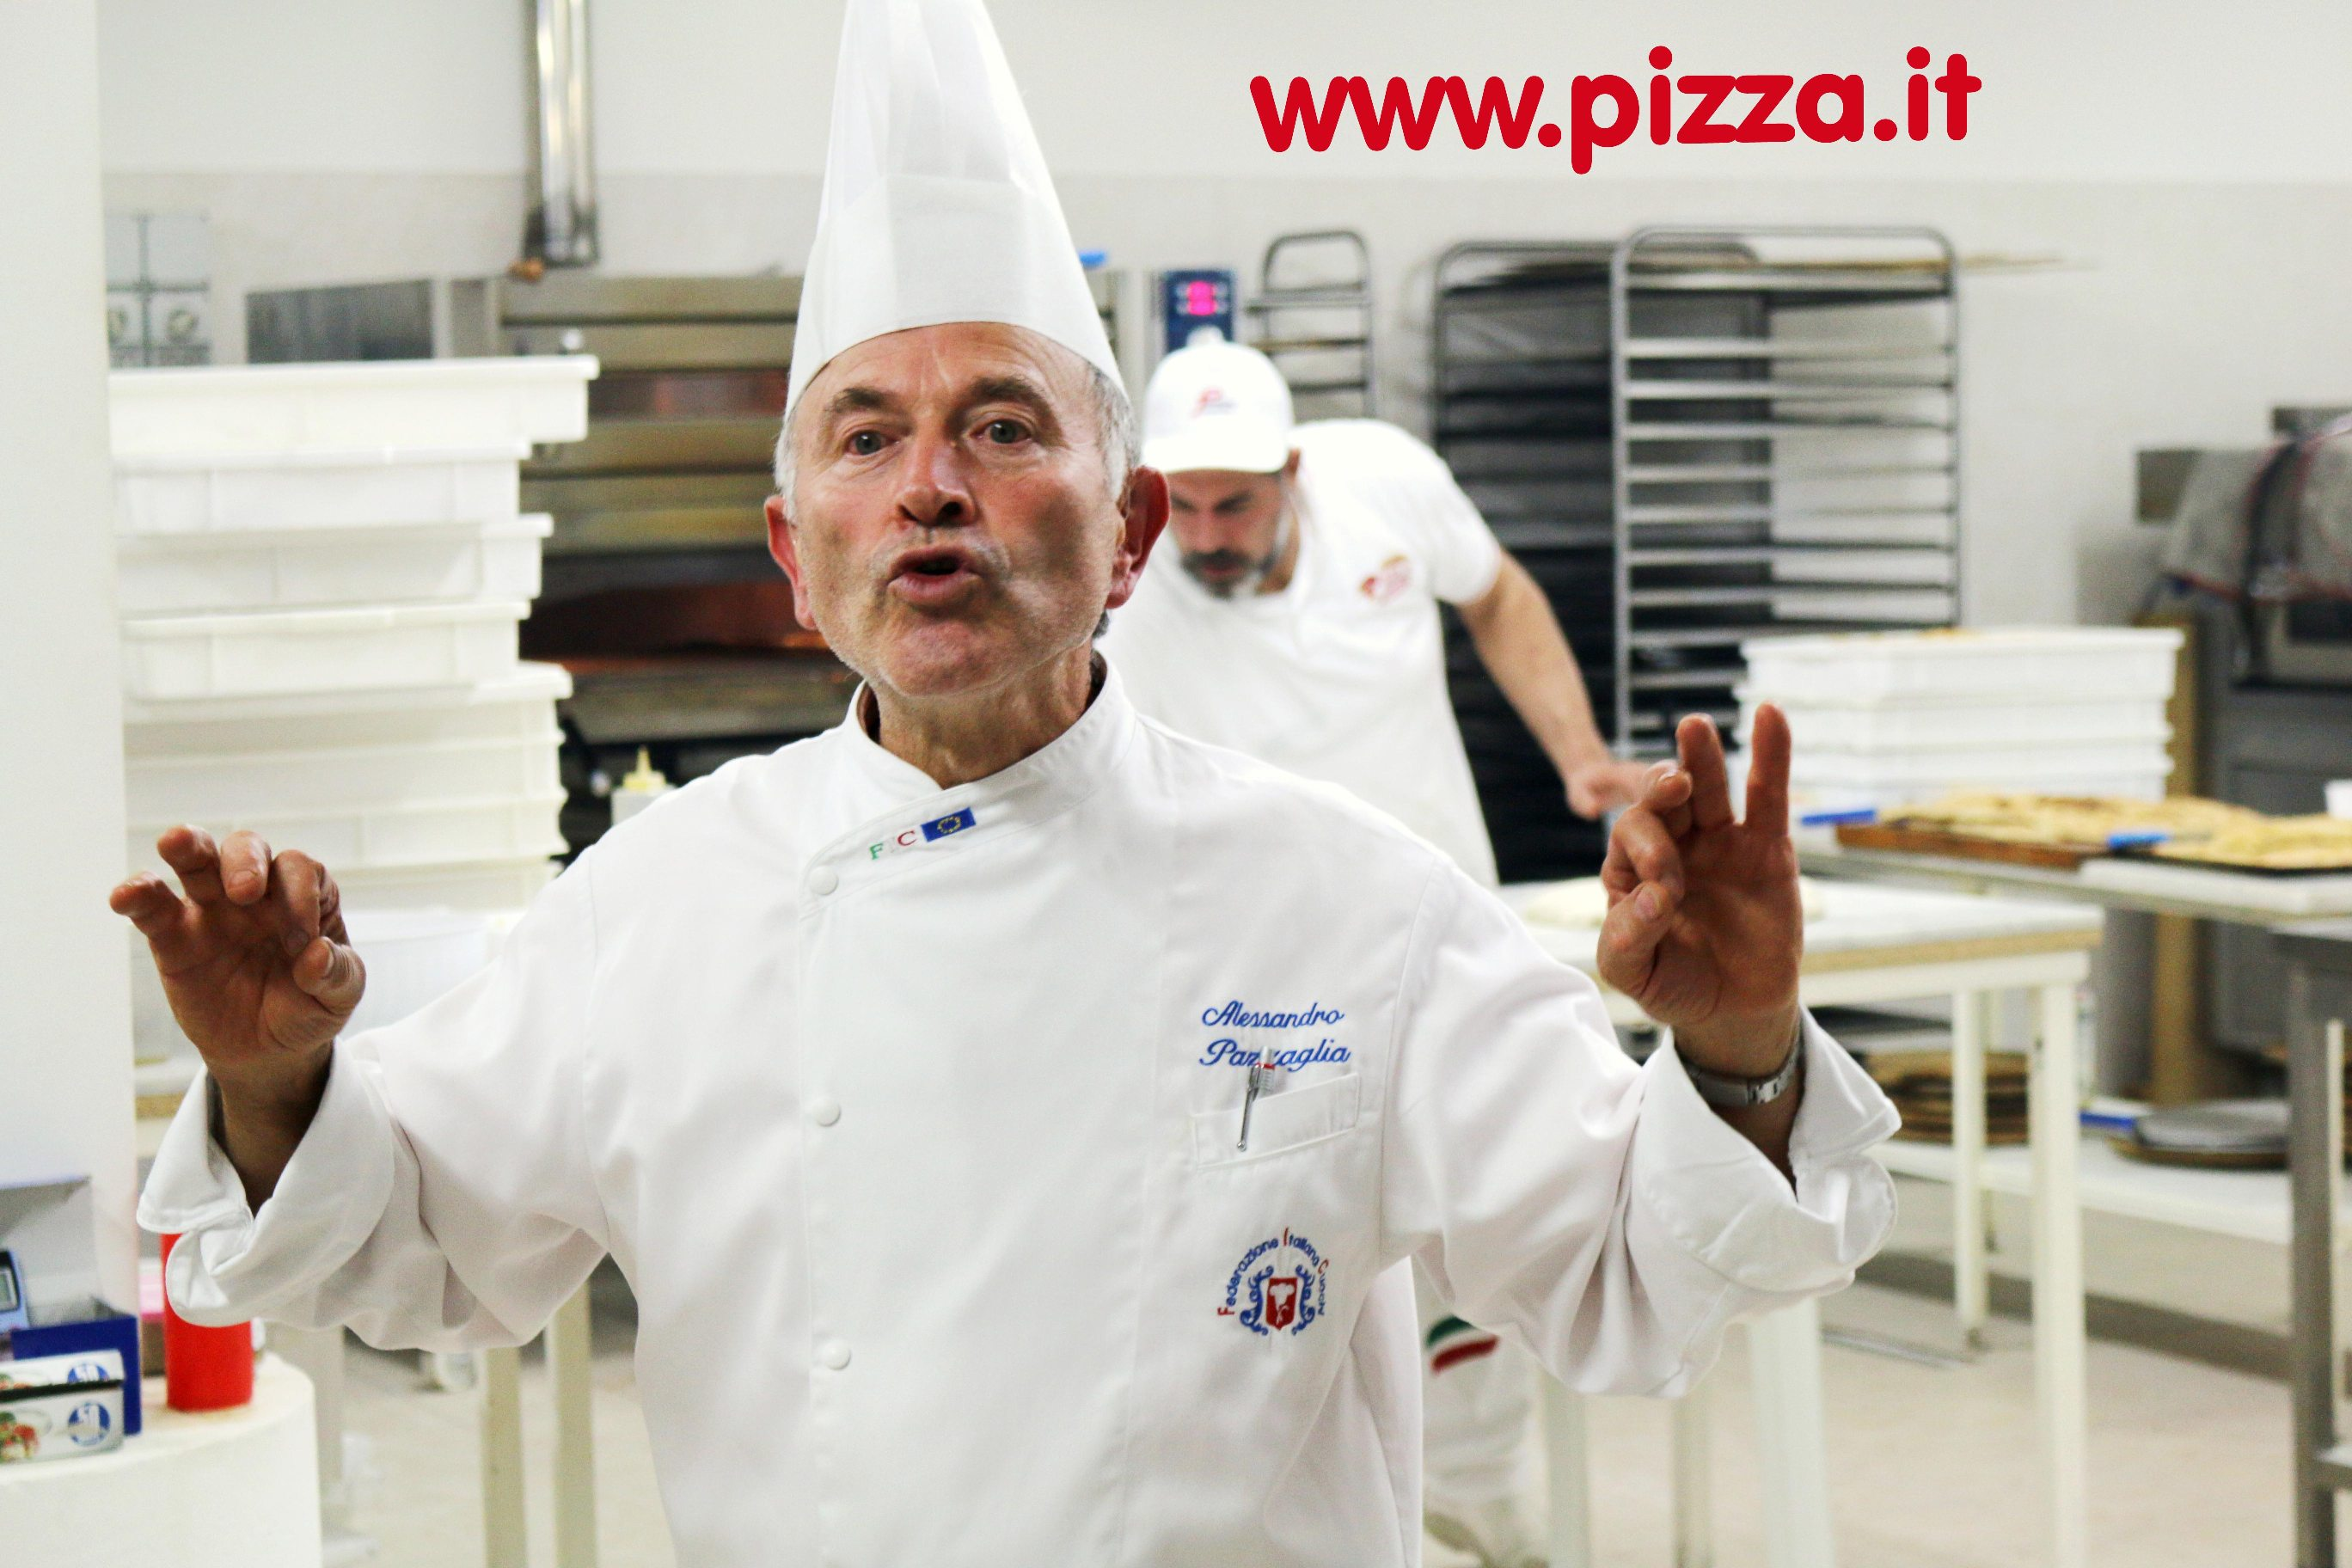 Alessandro Pazzaglia Chef - Pizza.it School